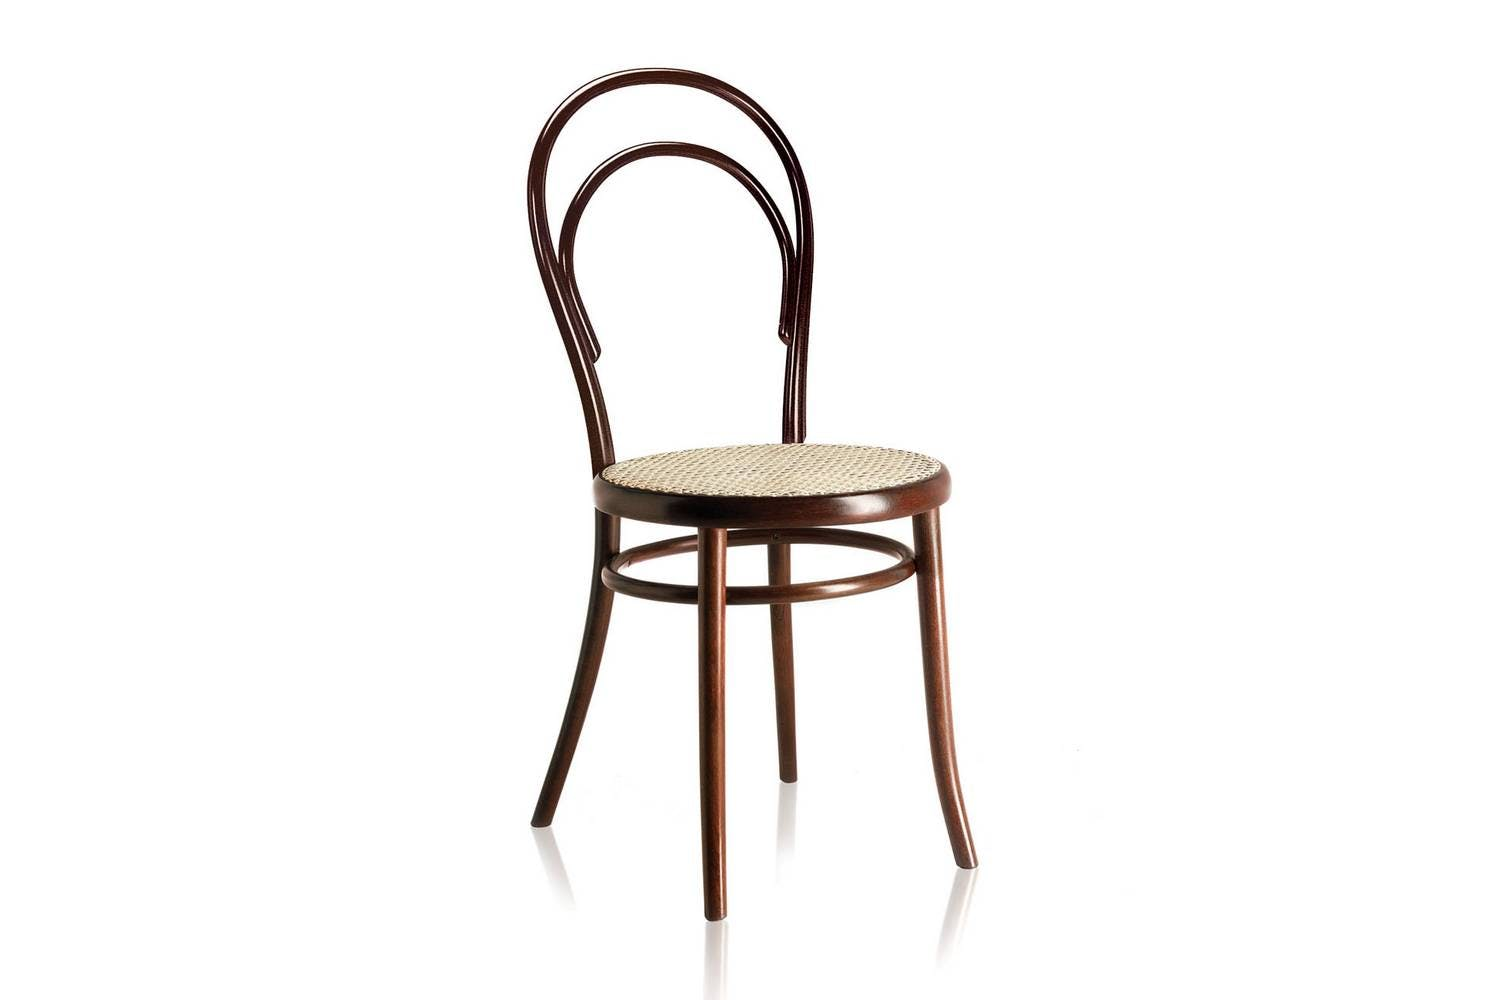 N 14 Chair By Michael Thonet For Gebruder Thonet Vienna